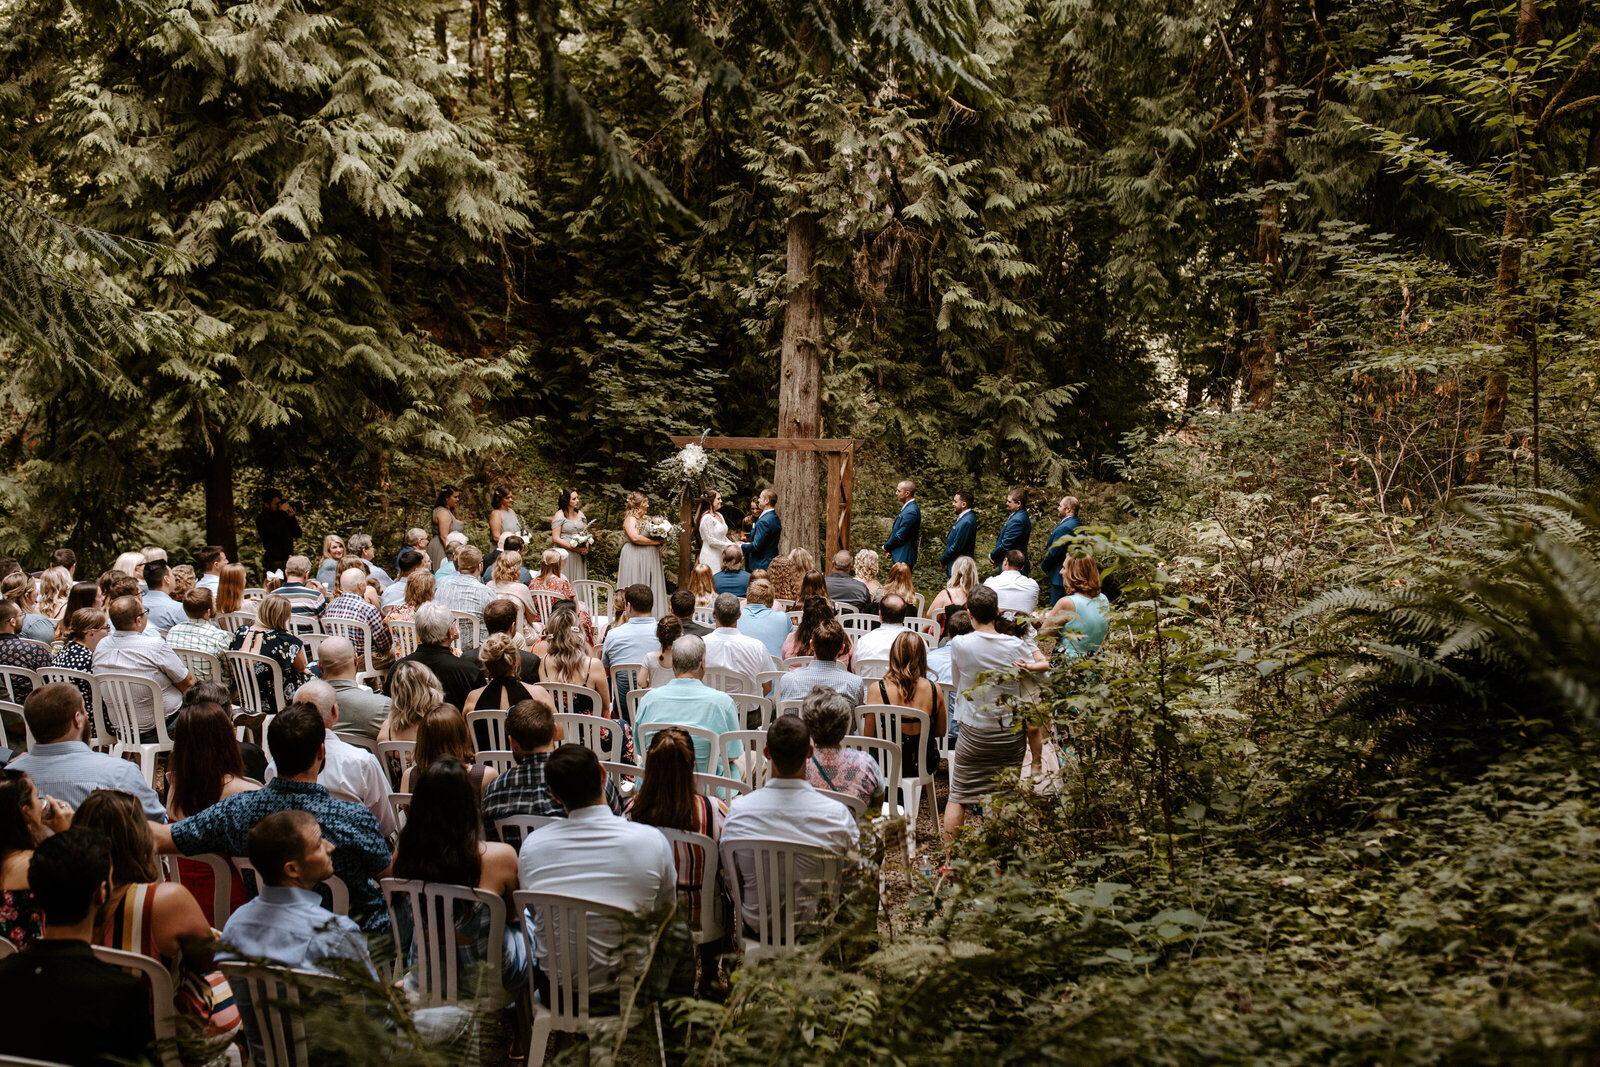 hornings-hideout-wedding-tiffany-peter-244